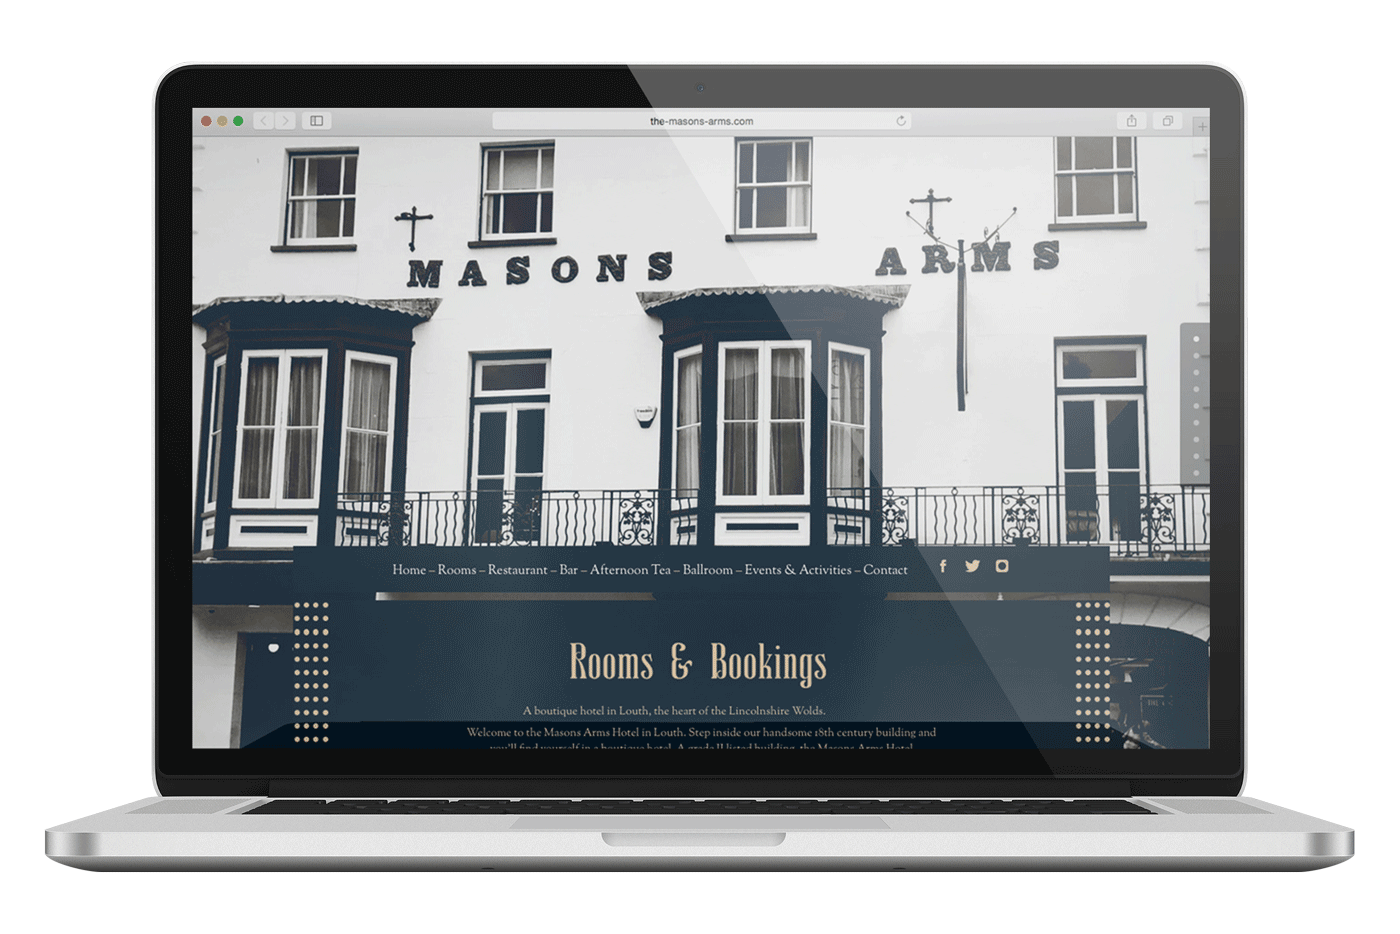 The Masons Arms website